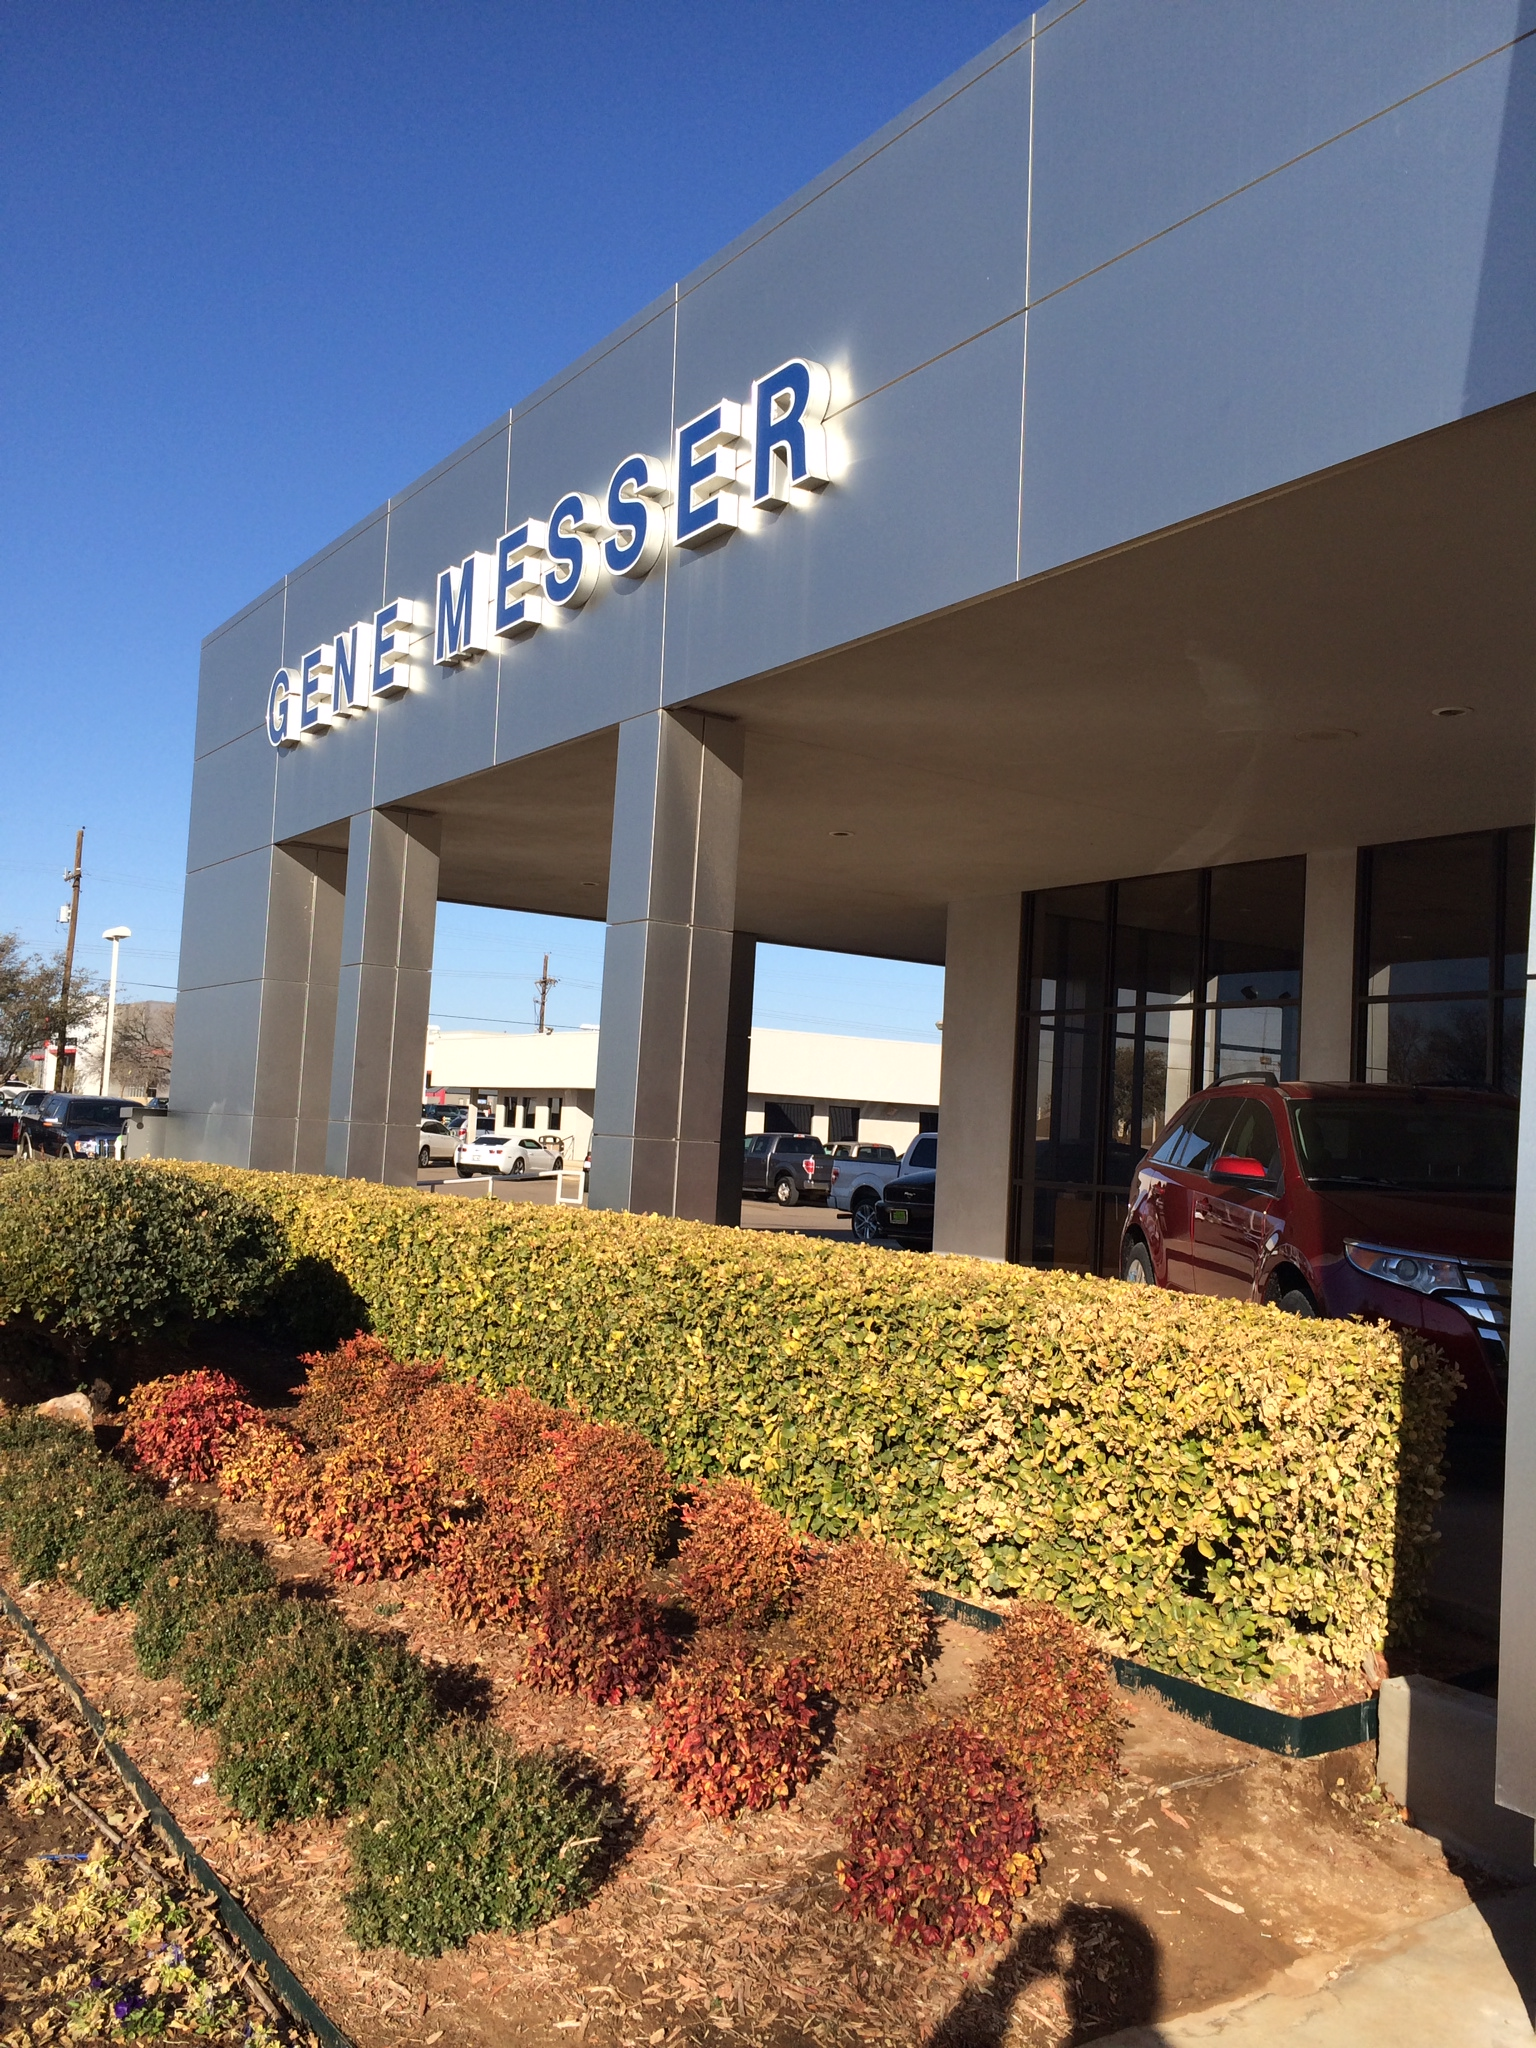 Gene Messer Ford Lincoln In Lubbock Tx 79407